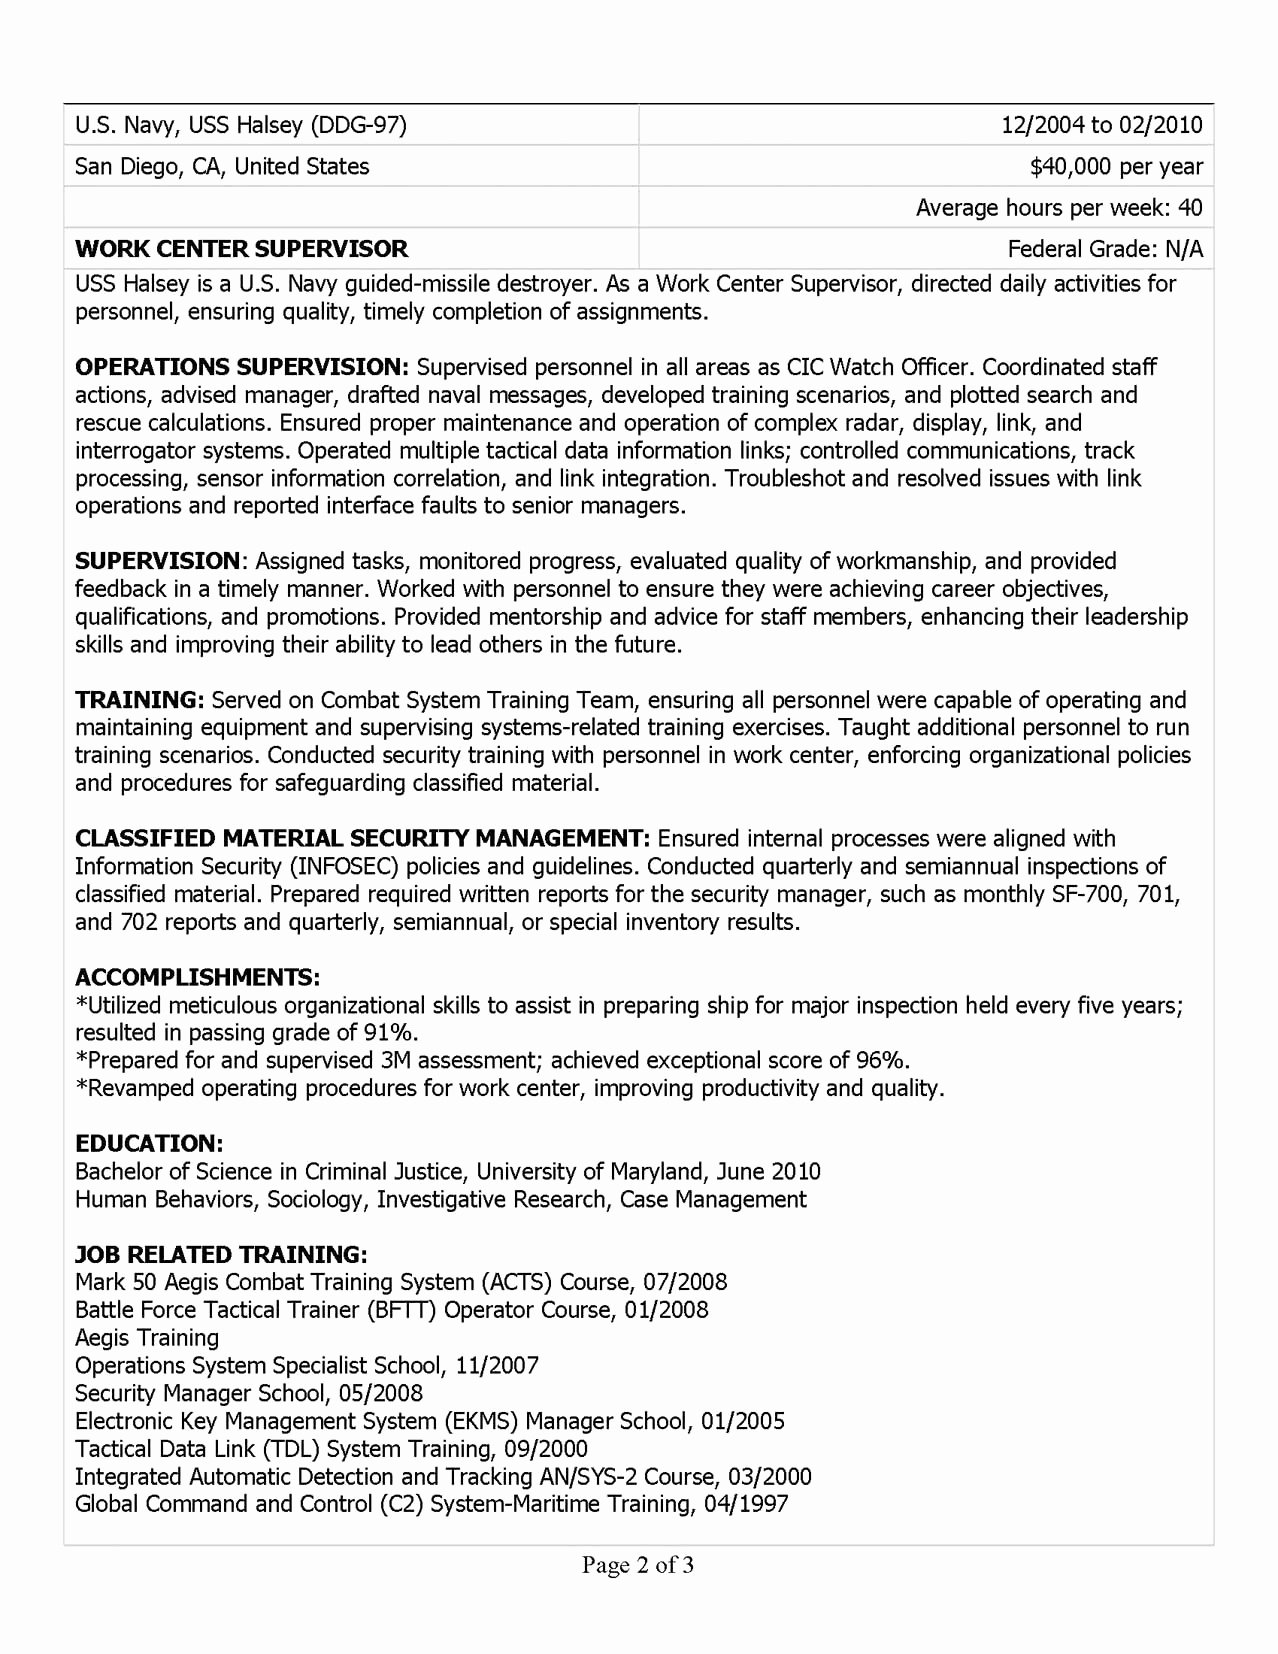 Medical Scribe Cover Letter Example Beautiful 9 10 Scribe Job Description Resume